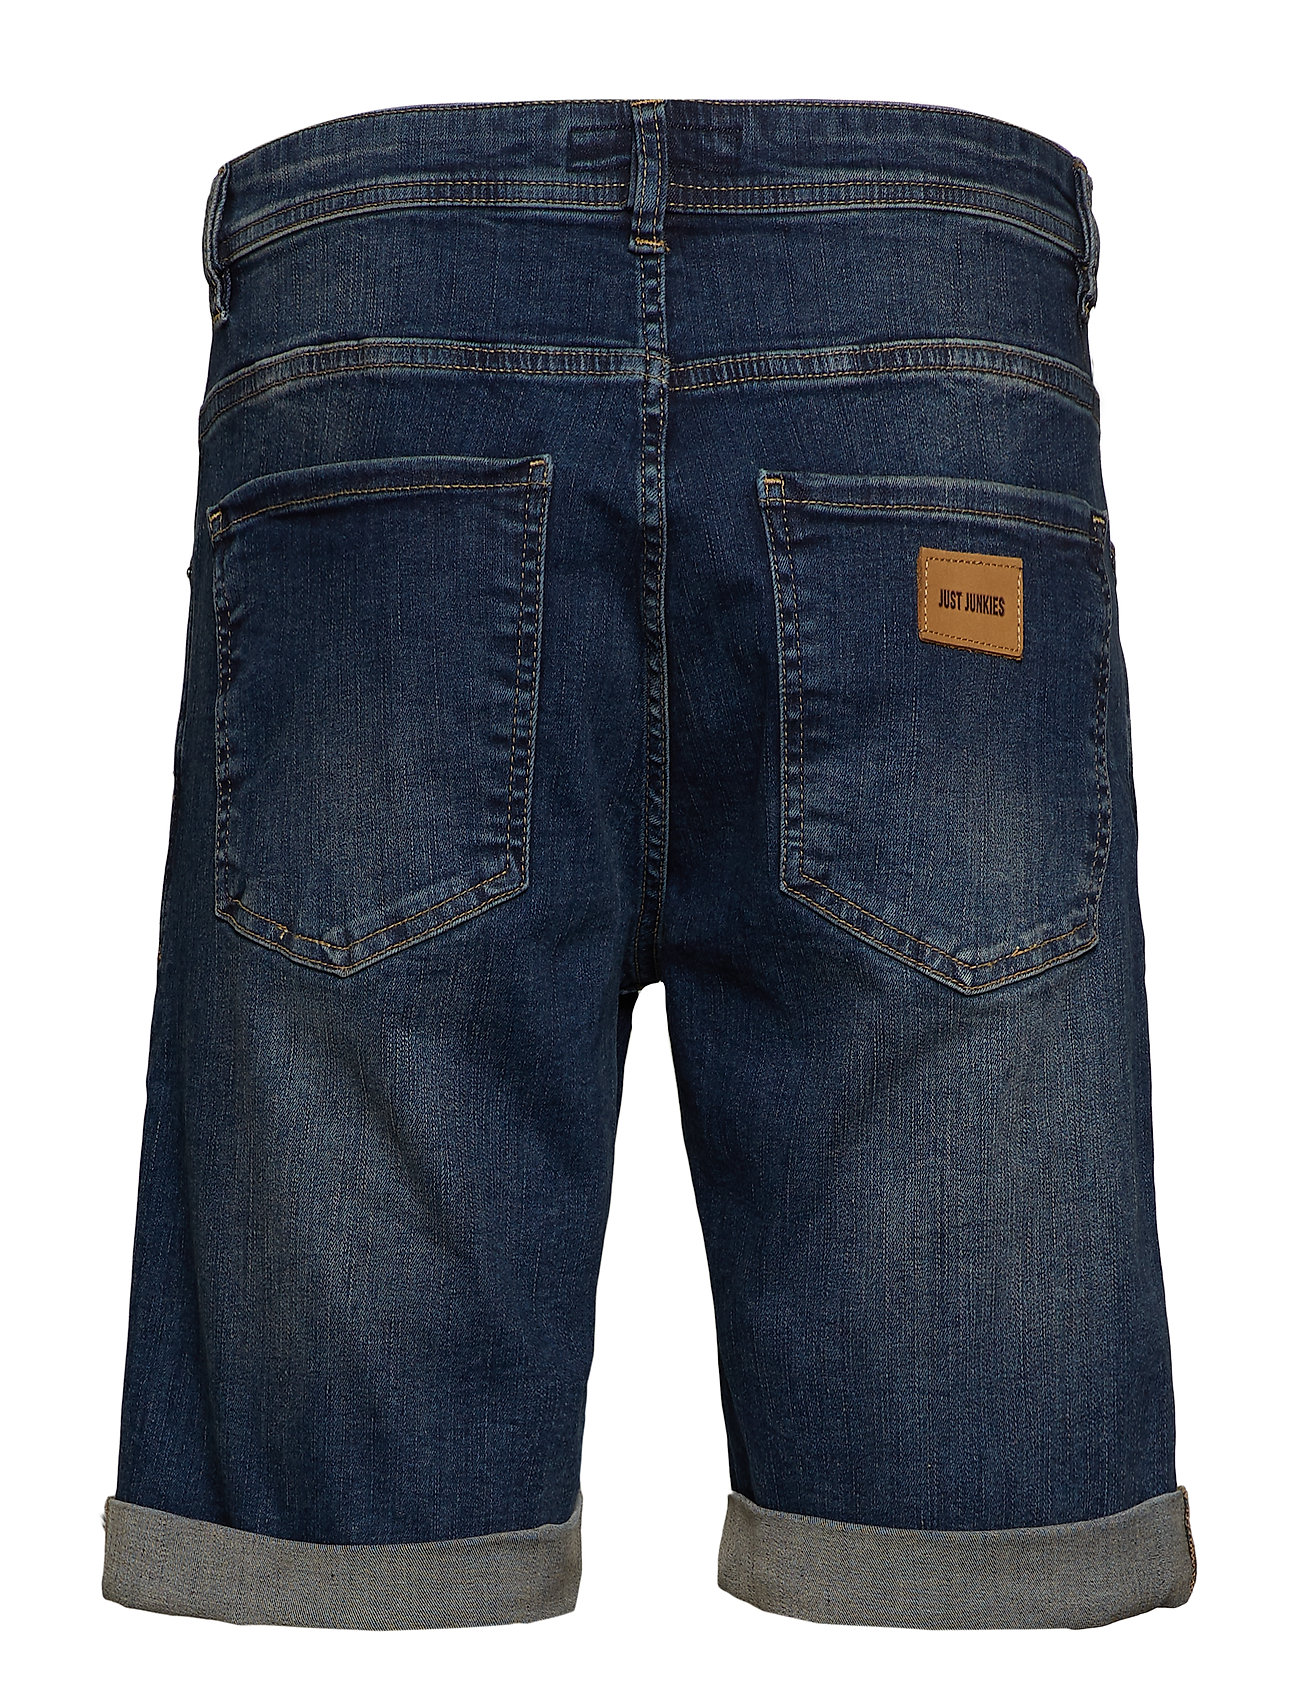 Mike Shorts Bb (Base Blue) (356.49 kr) - Just Junkies